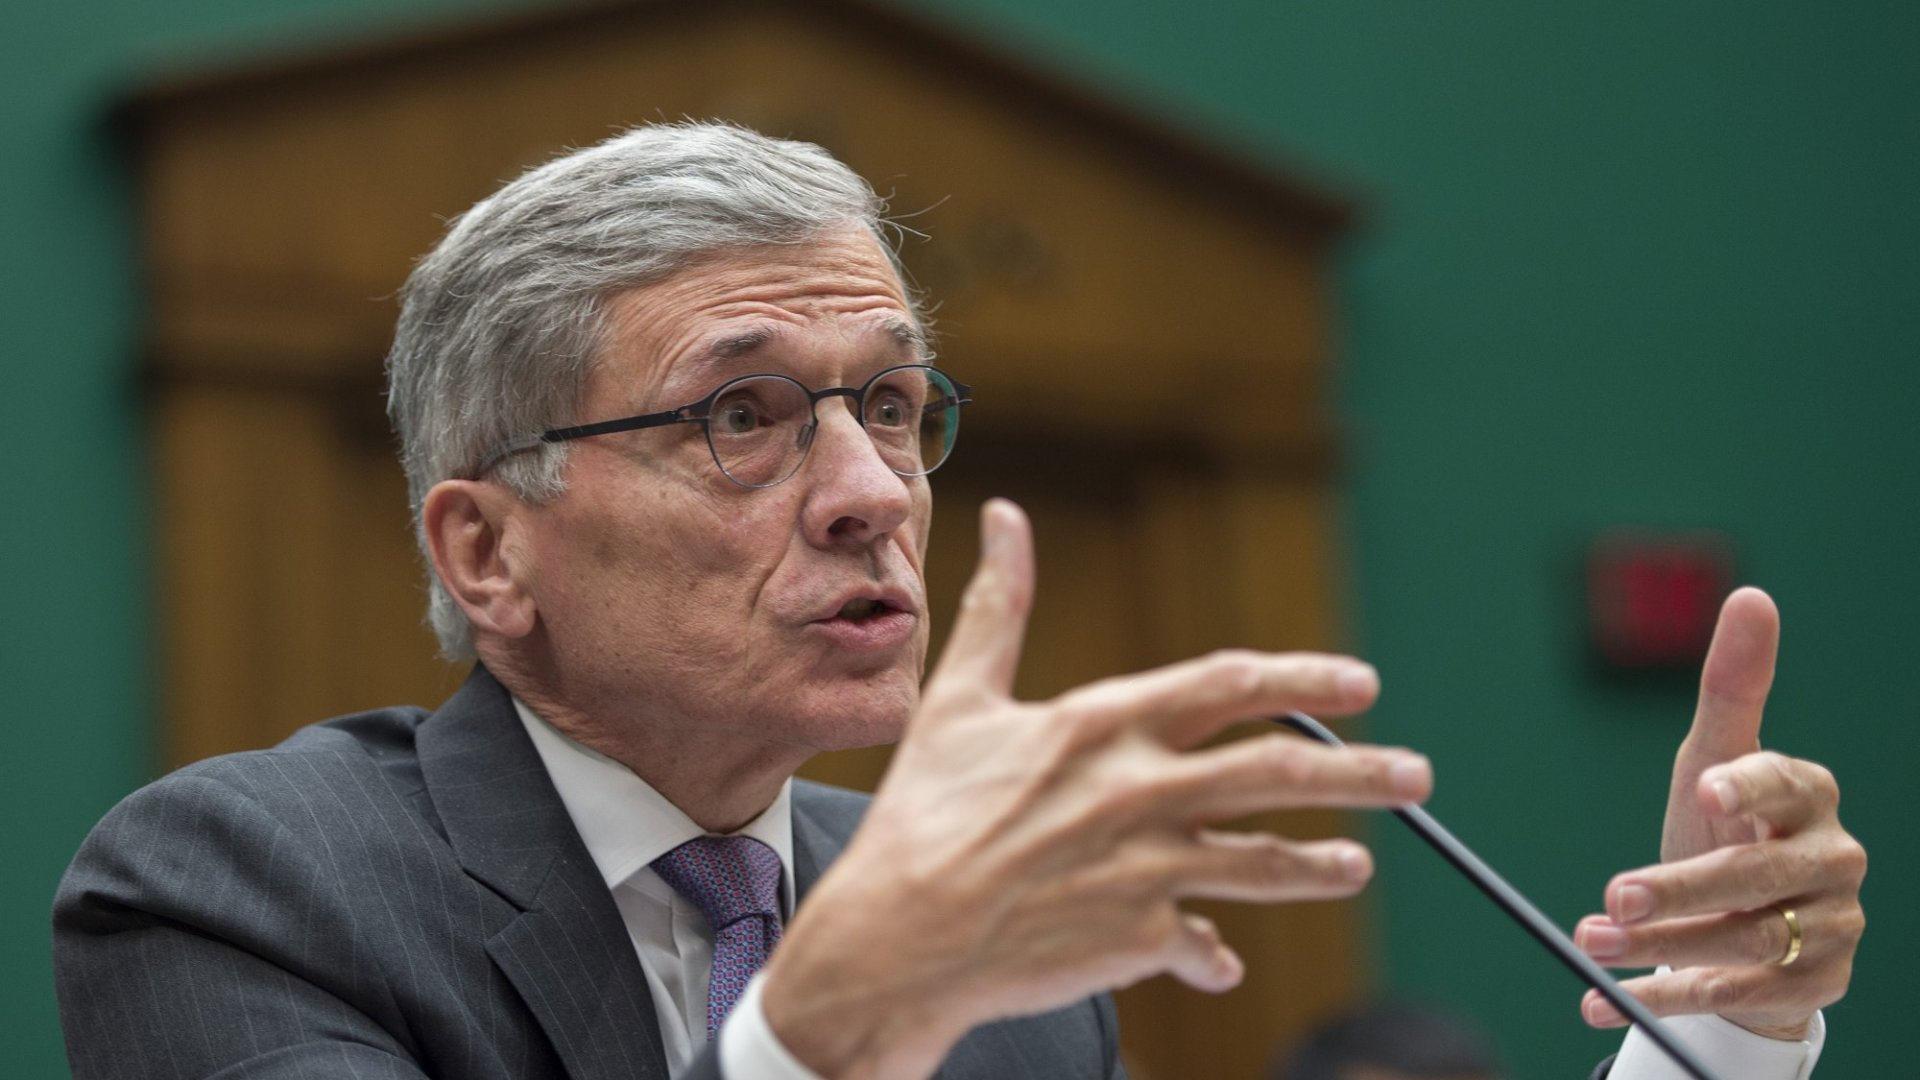 Why the FCC's Latest Net-Neutrality Rules Elicit 'Cautious Optimism'